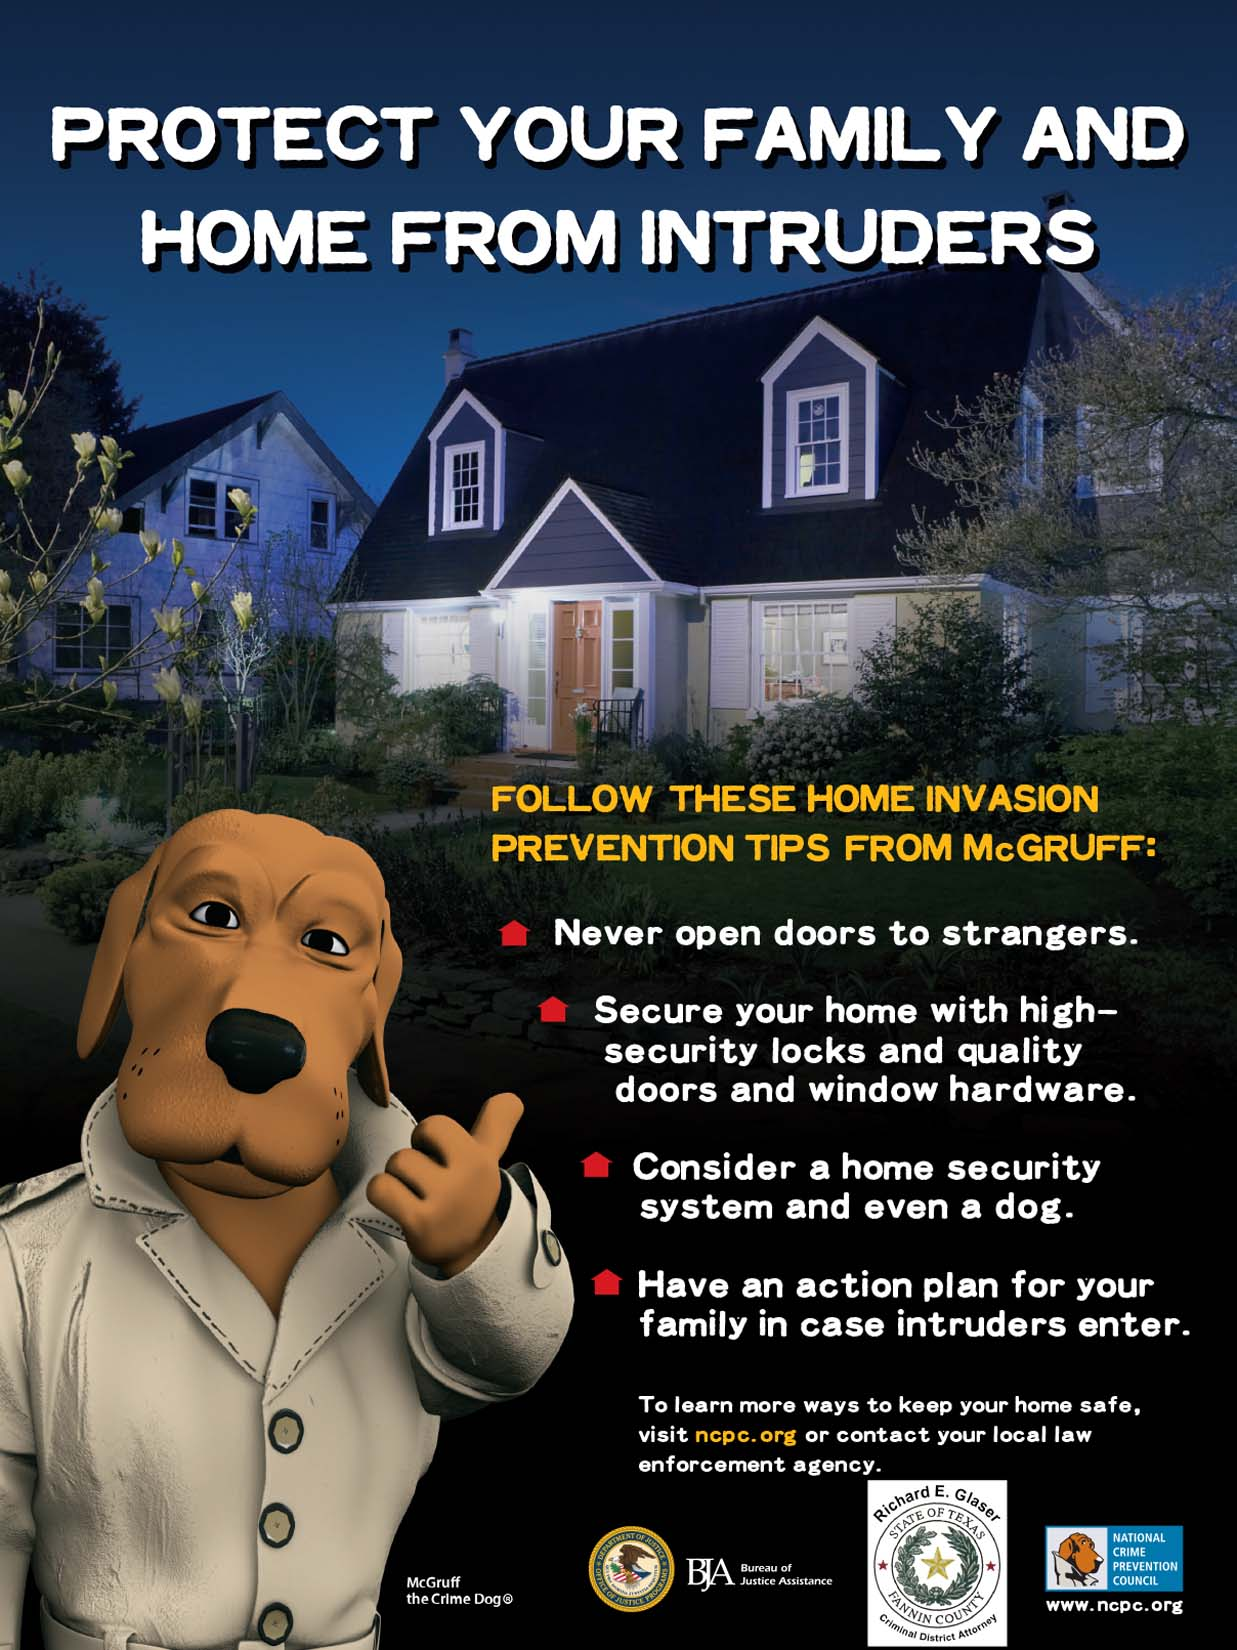 Protect Your Family And Home From Intruders / Proteja su Familia y su Hogar de Intrusos